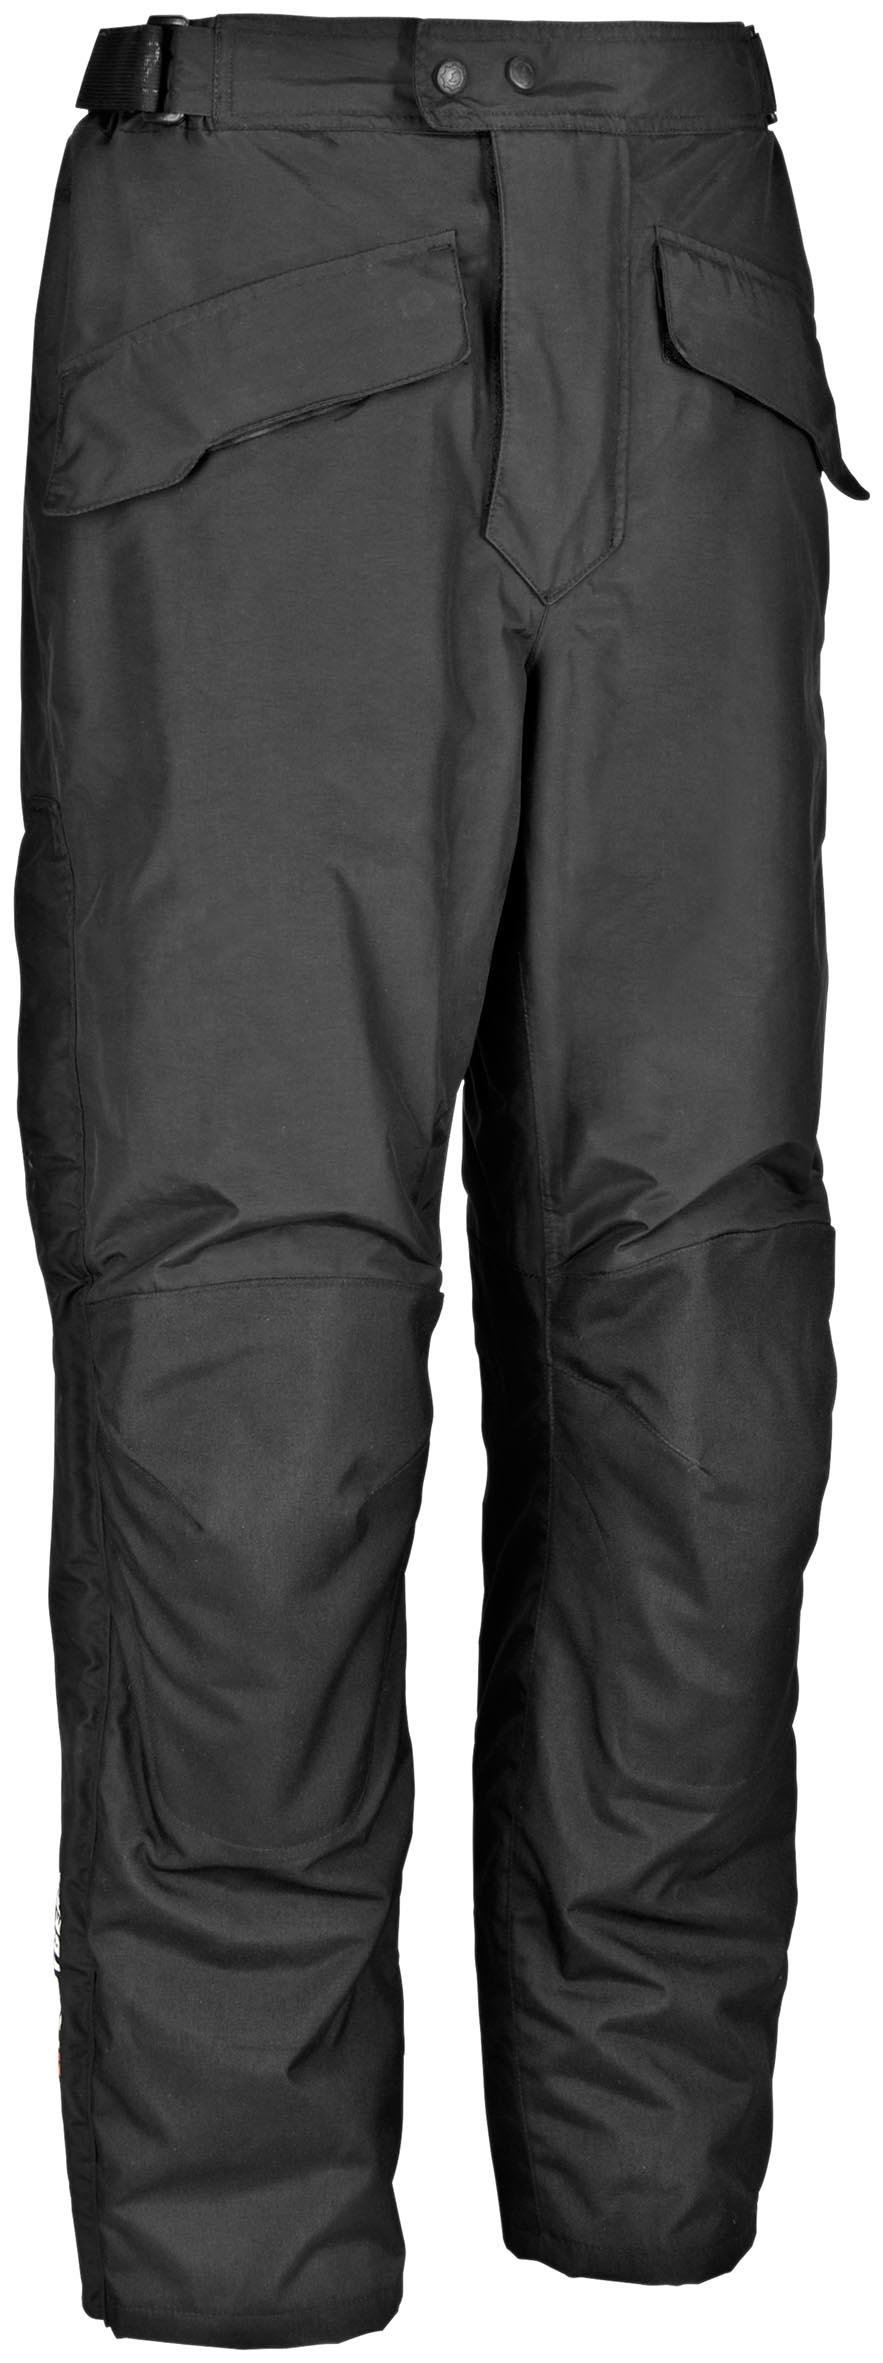 FirstGear HT Overpants Shell Men's Textile Sports Bike Racing Motorcycle Pants - Black / Tall / Size 38 by Firstgear